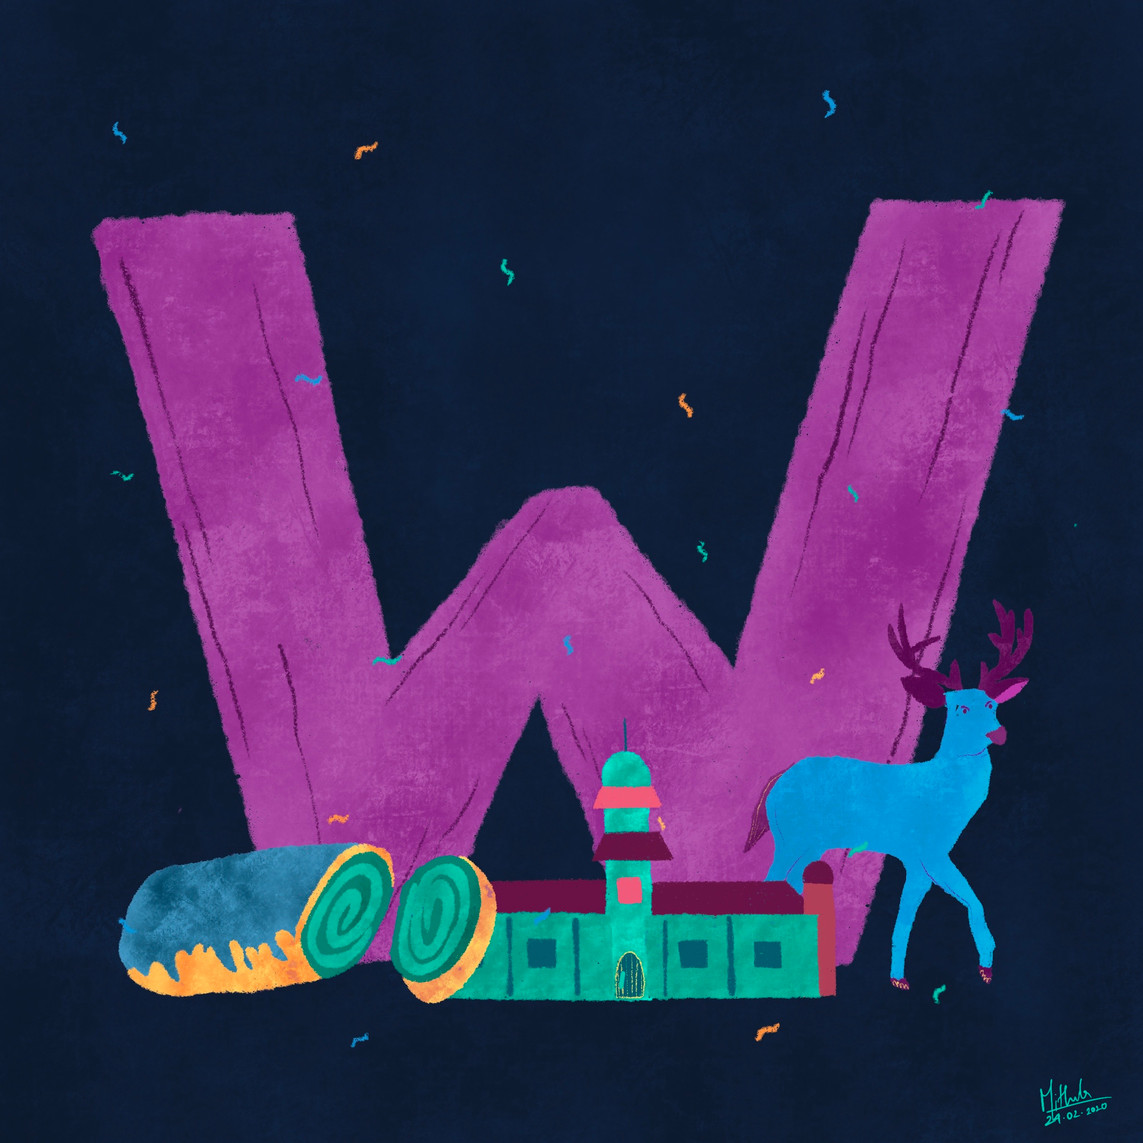 W for Warsaw